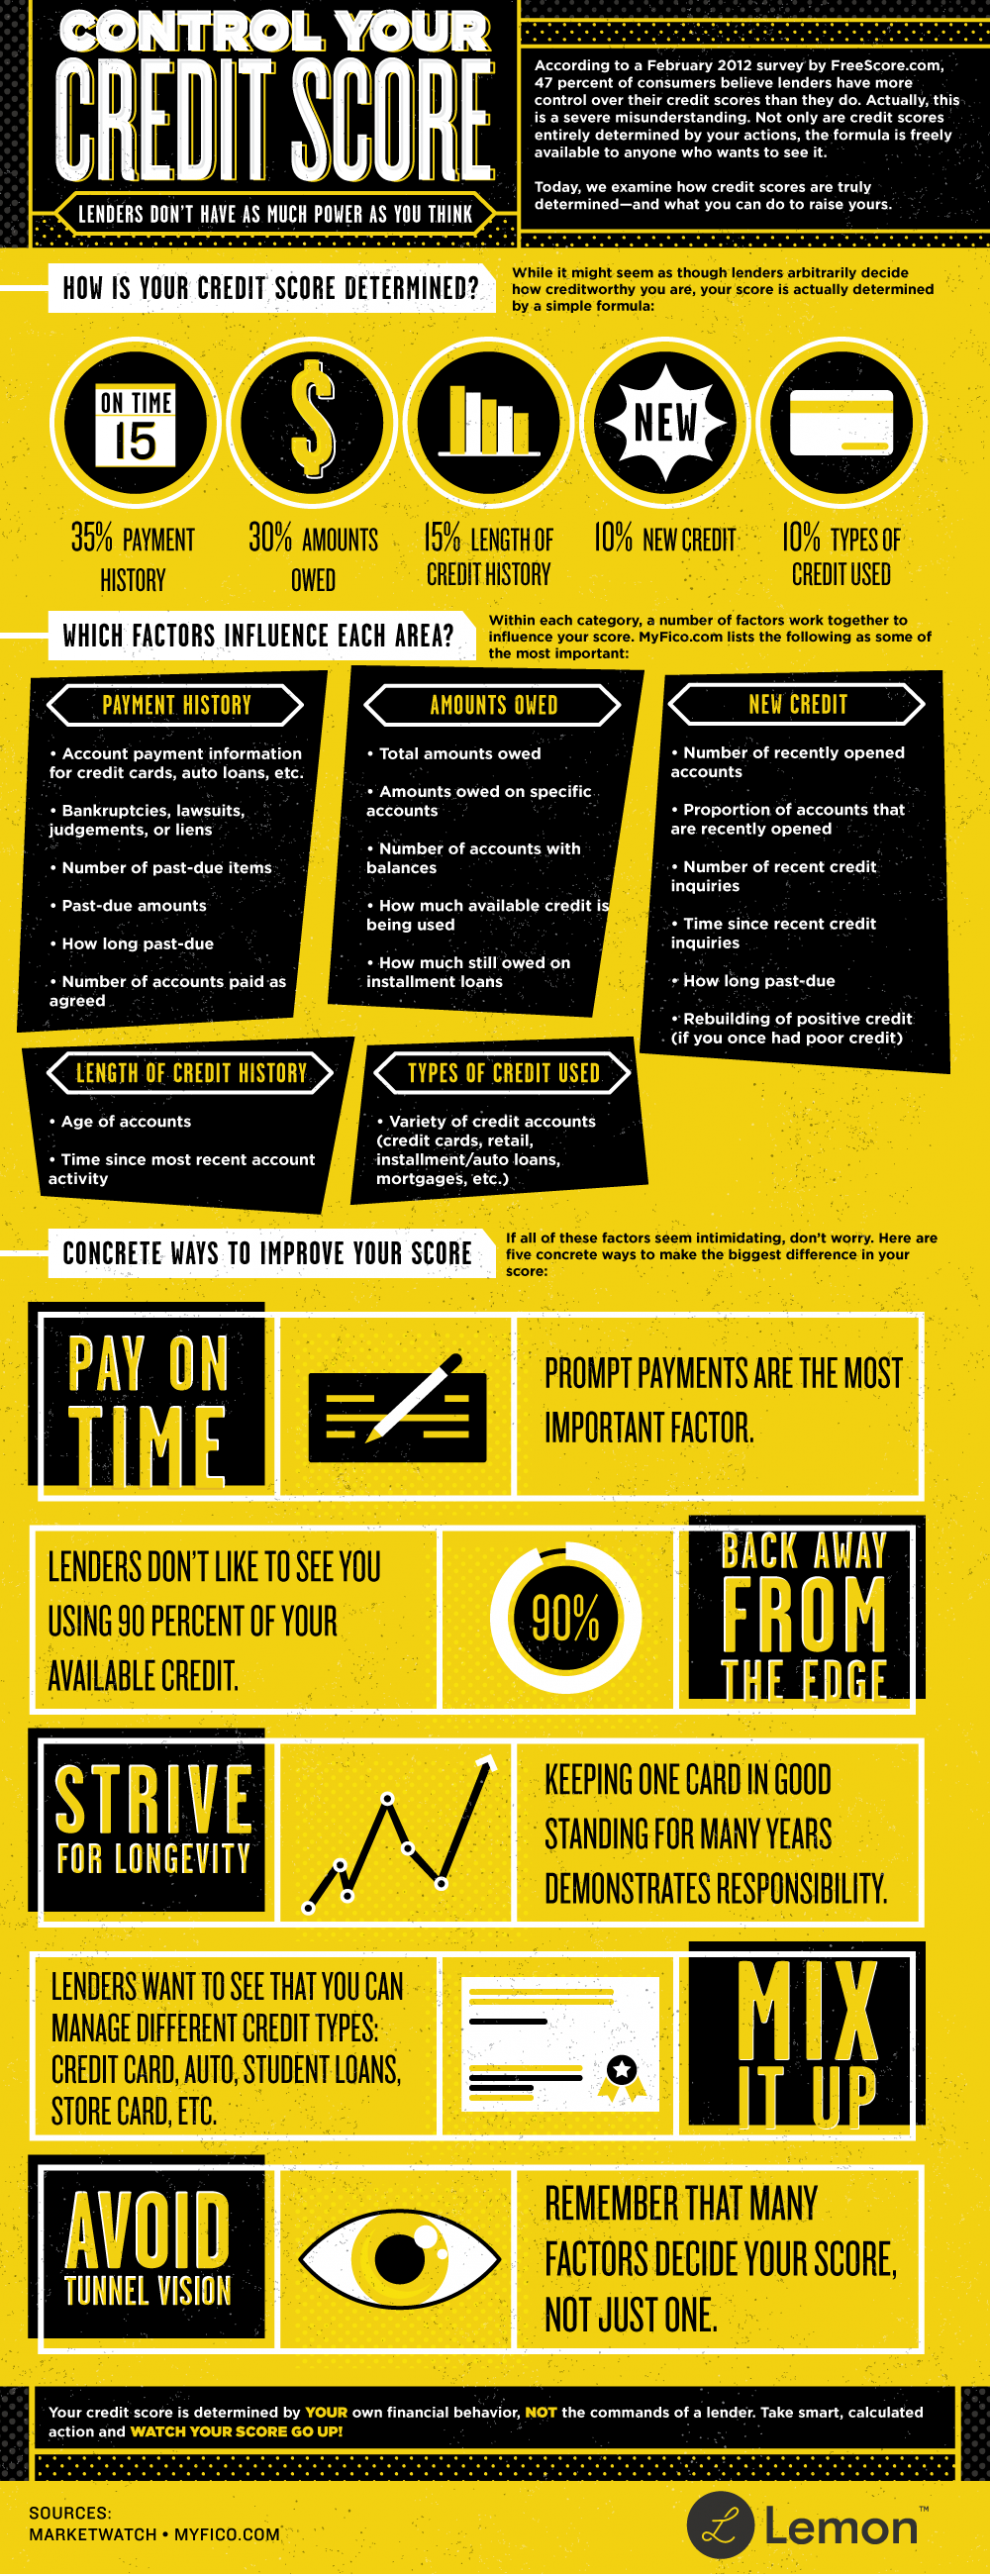 How To Control Your Credit Score Infographic